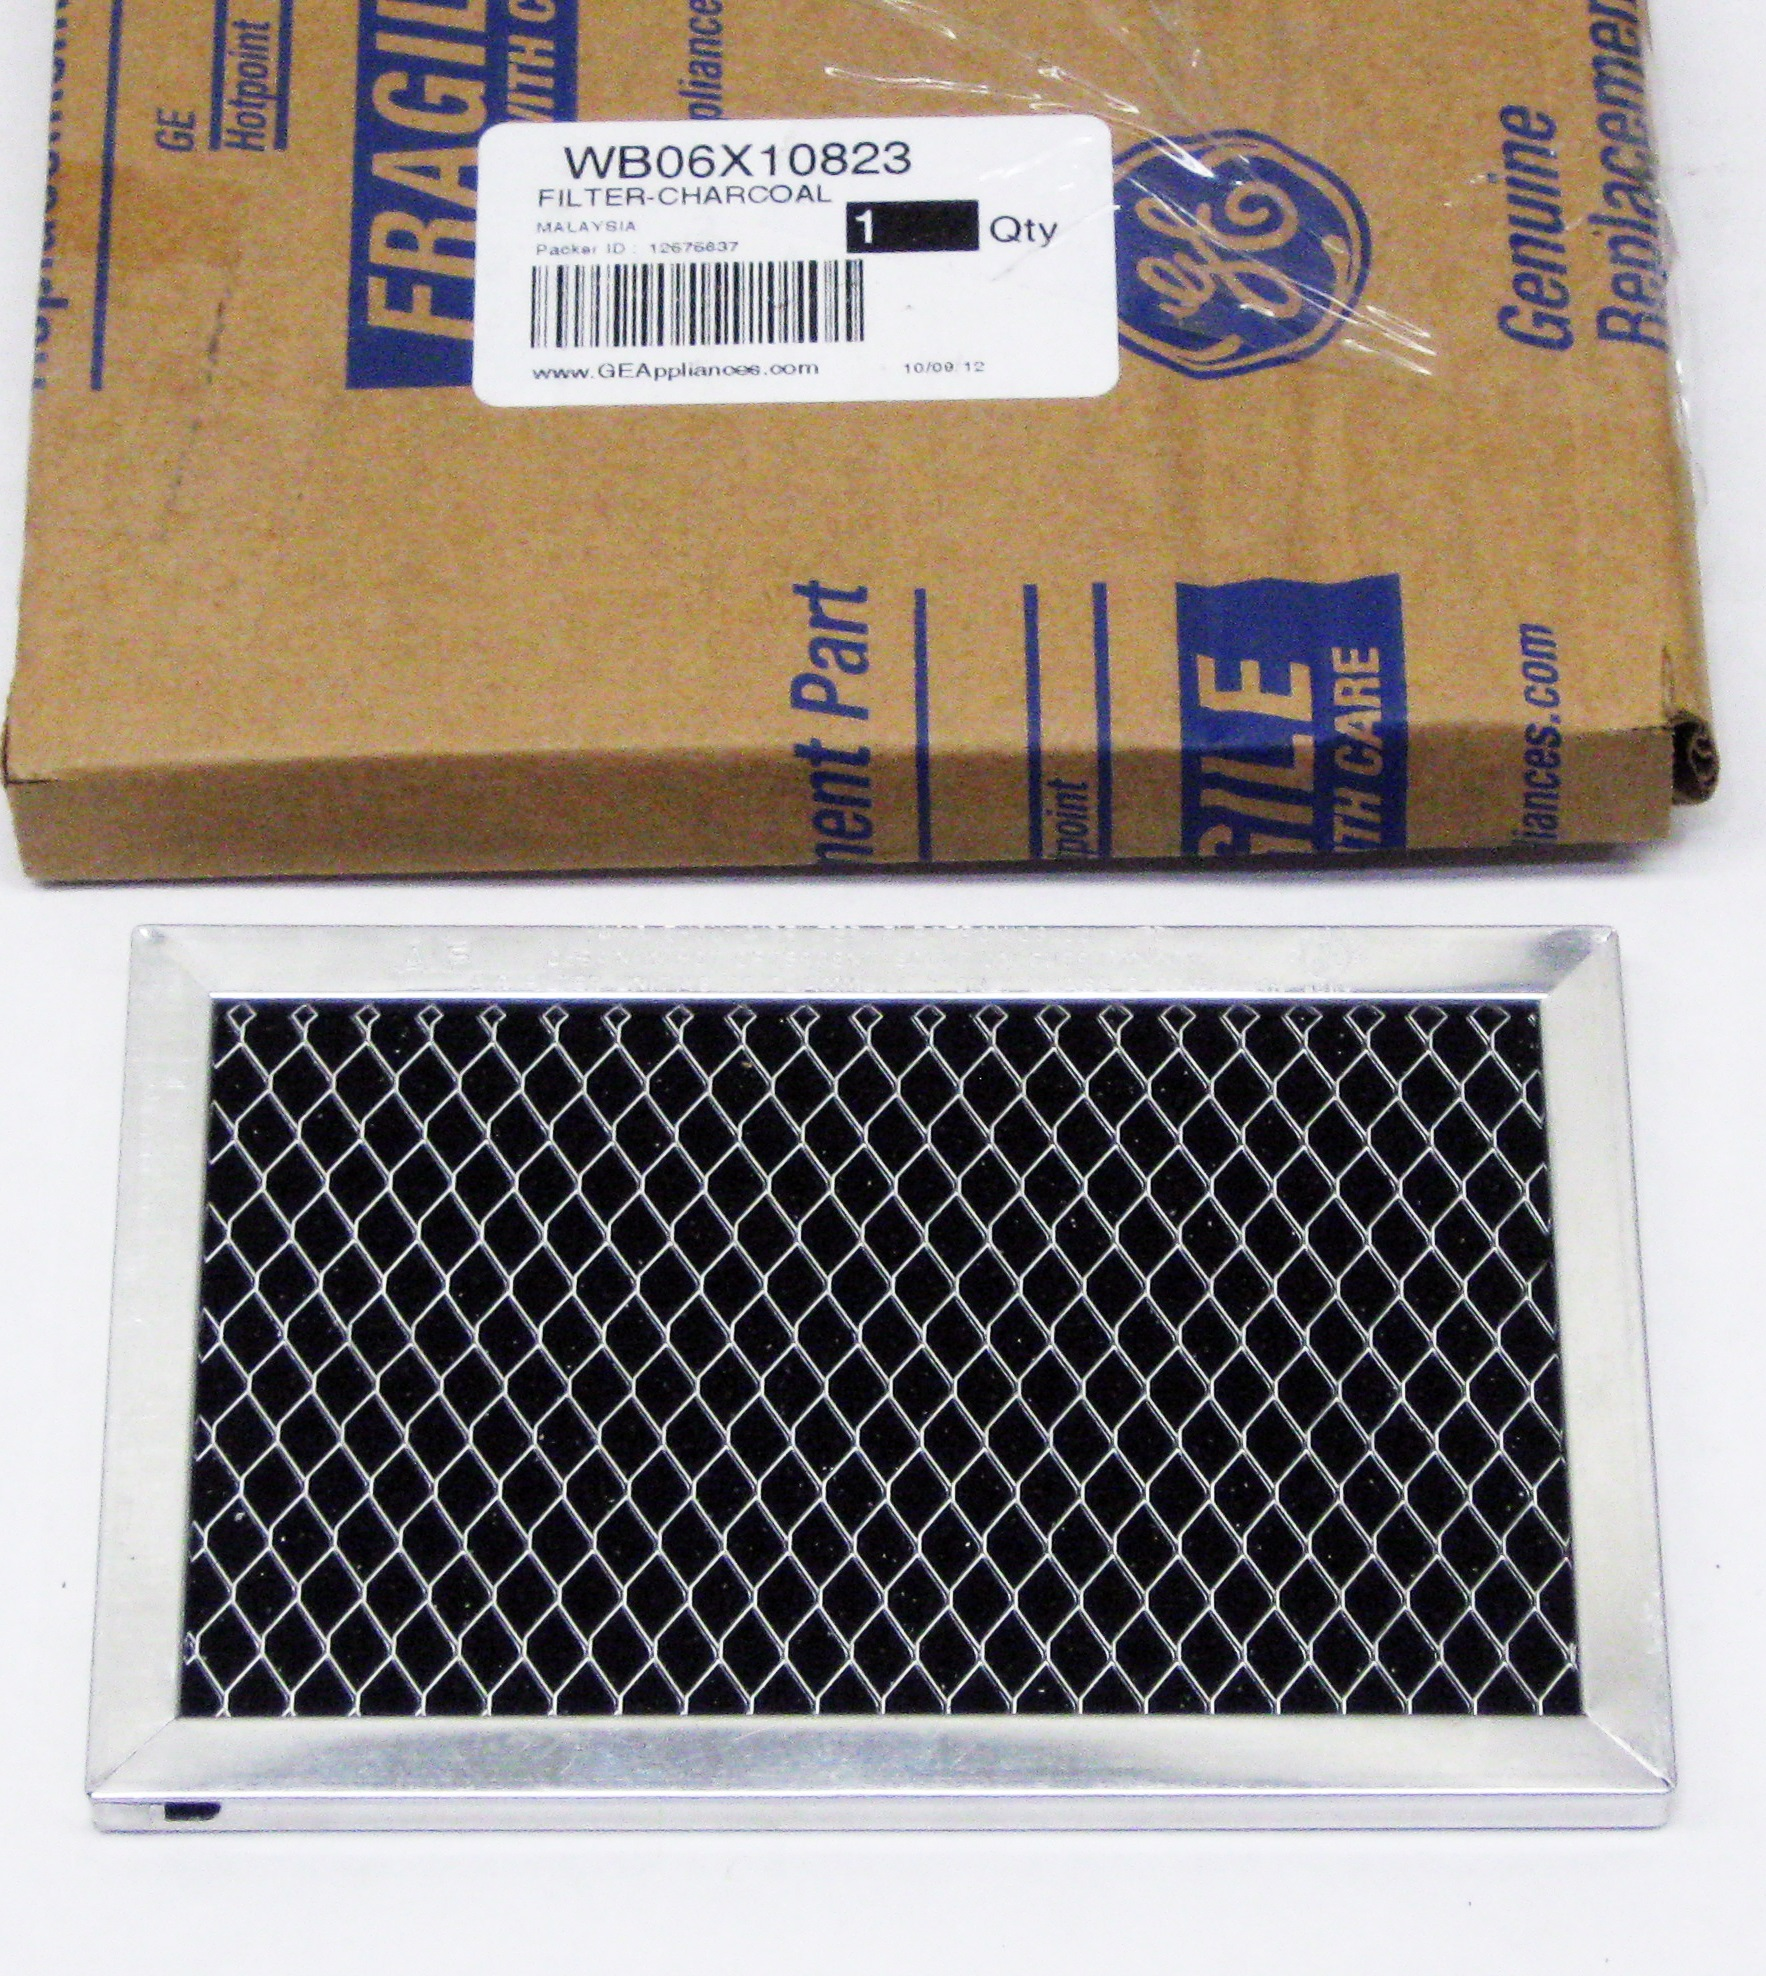 Ge Microwave Charcoal Filter Wb06x10823 Ap4484097